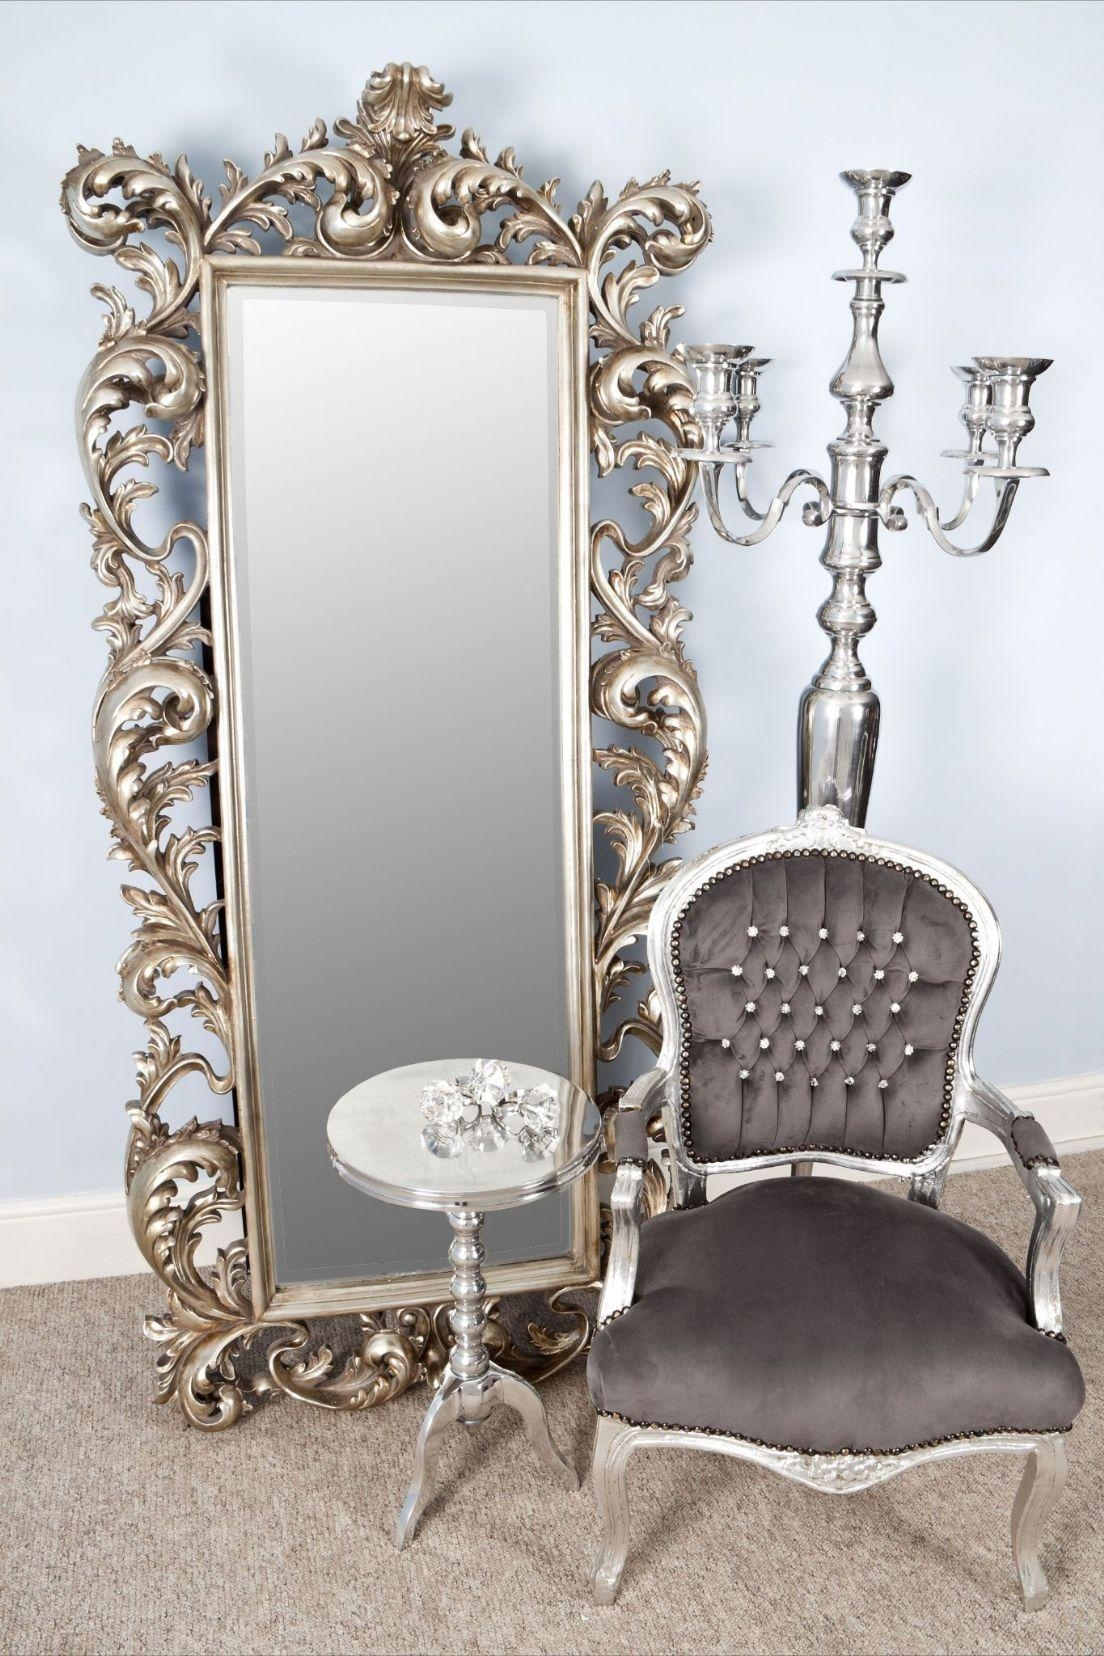 Ornate Mirrors For Sale 125 Awesome Exterior With Large Wall Throughout Extra Large Ornate Mirror (Image 17 of 20)